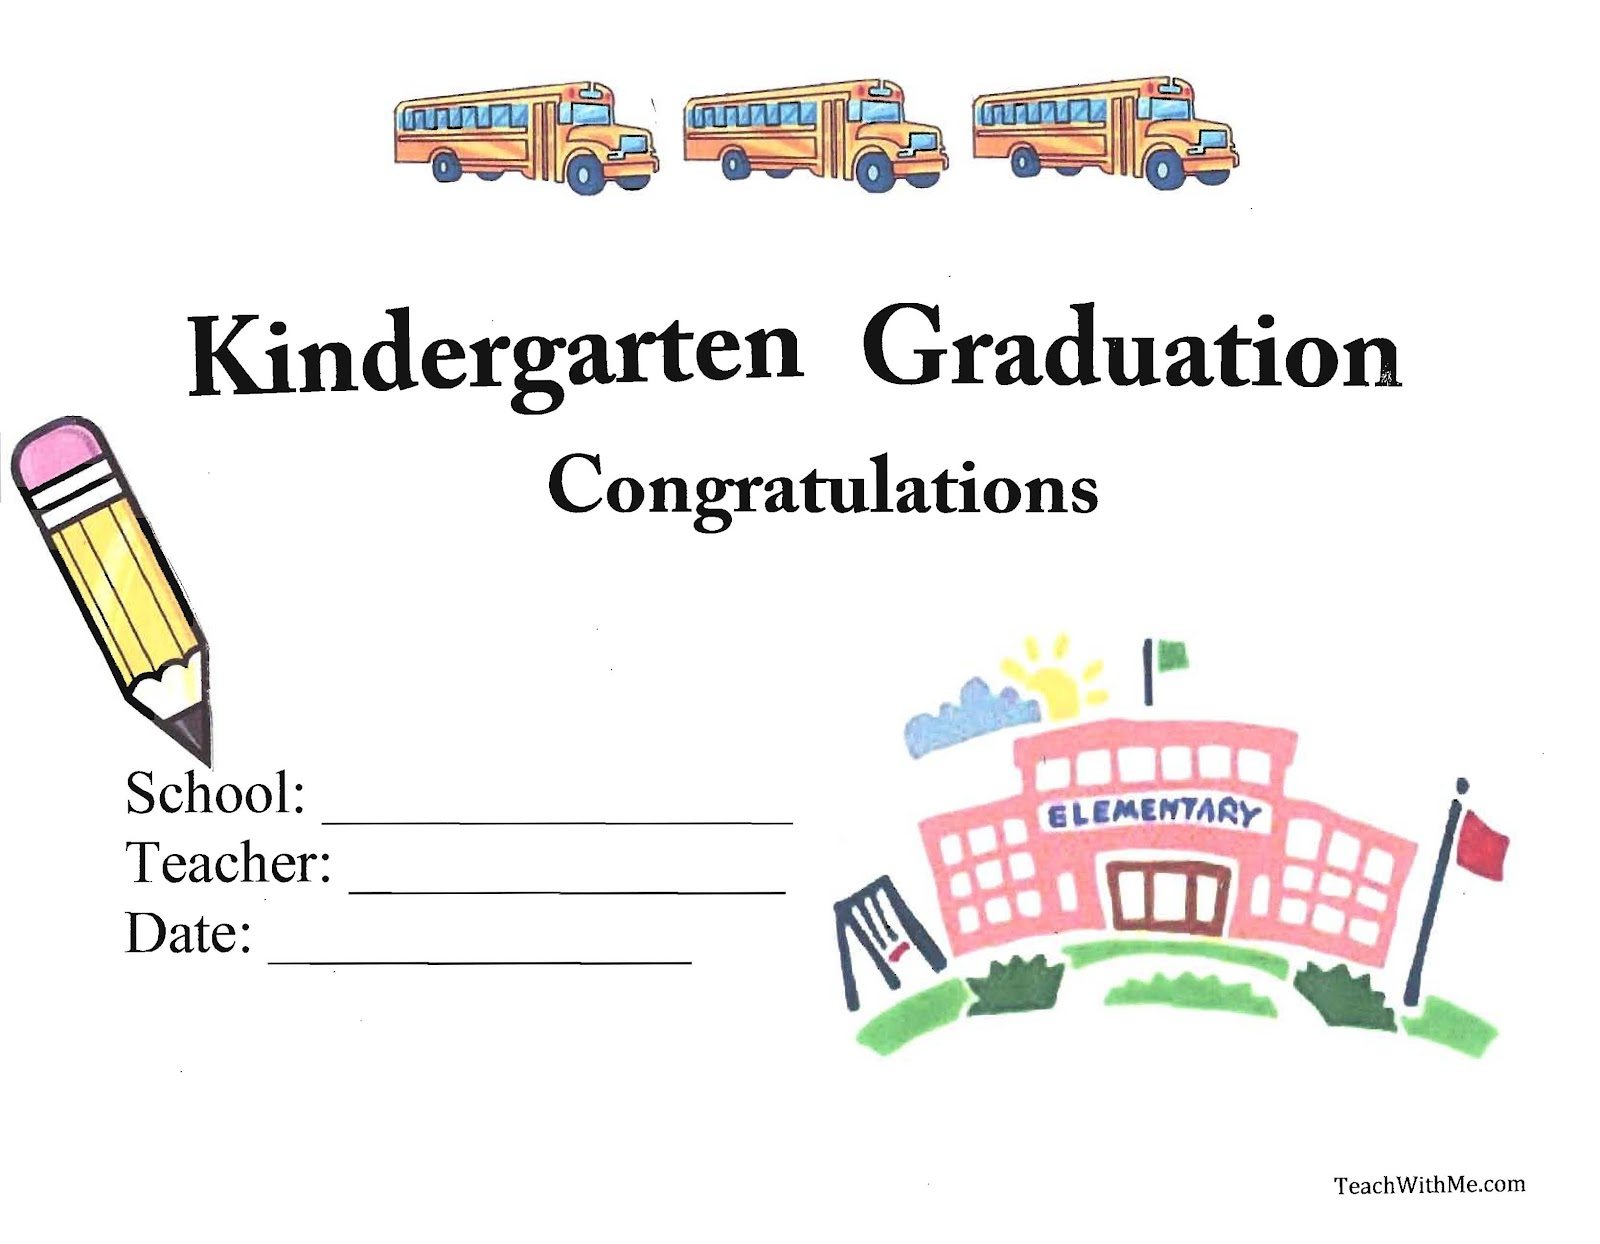 free printable graduation certificates, graduation certificate templates, free diploma certificate template, editable printable kindergarten certificates, diplomas free templates to fill out, online diploma courses, free diploma templates, editable printable kindergarten certificates, editable kindergarten diplomas